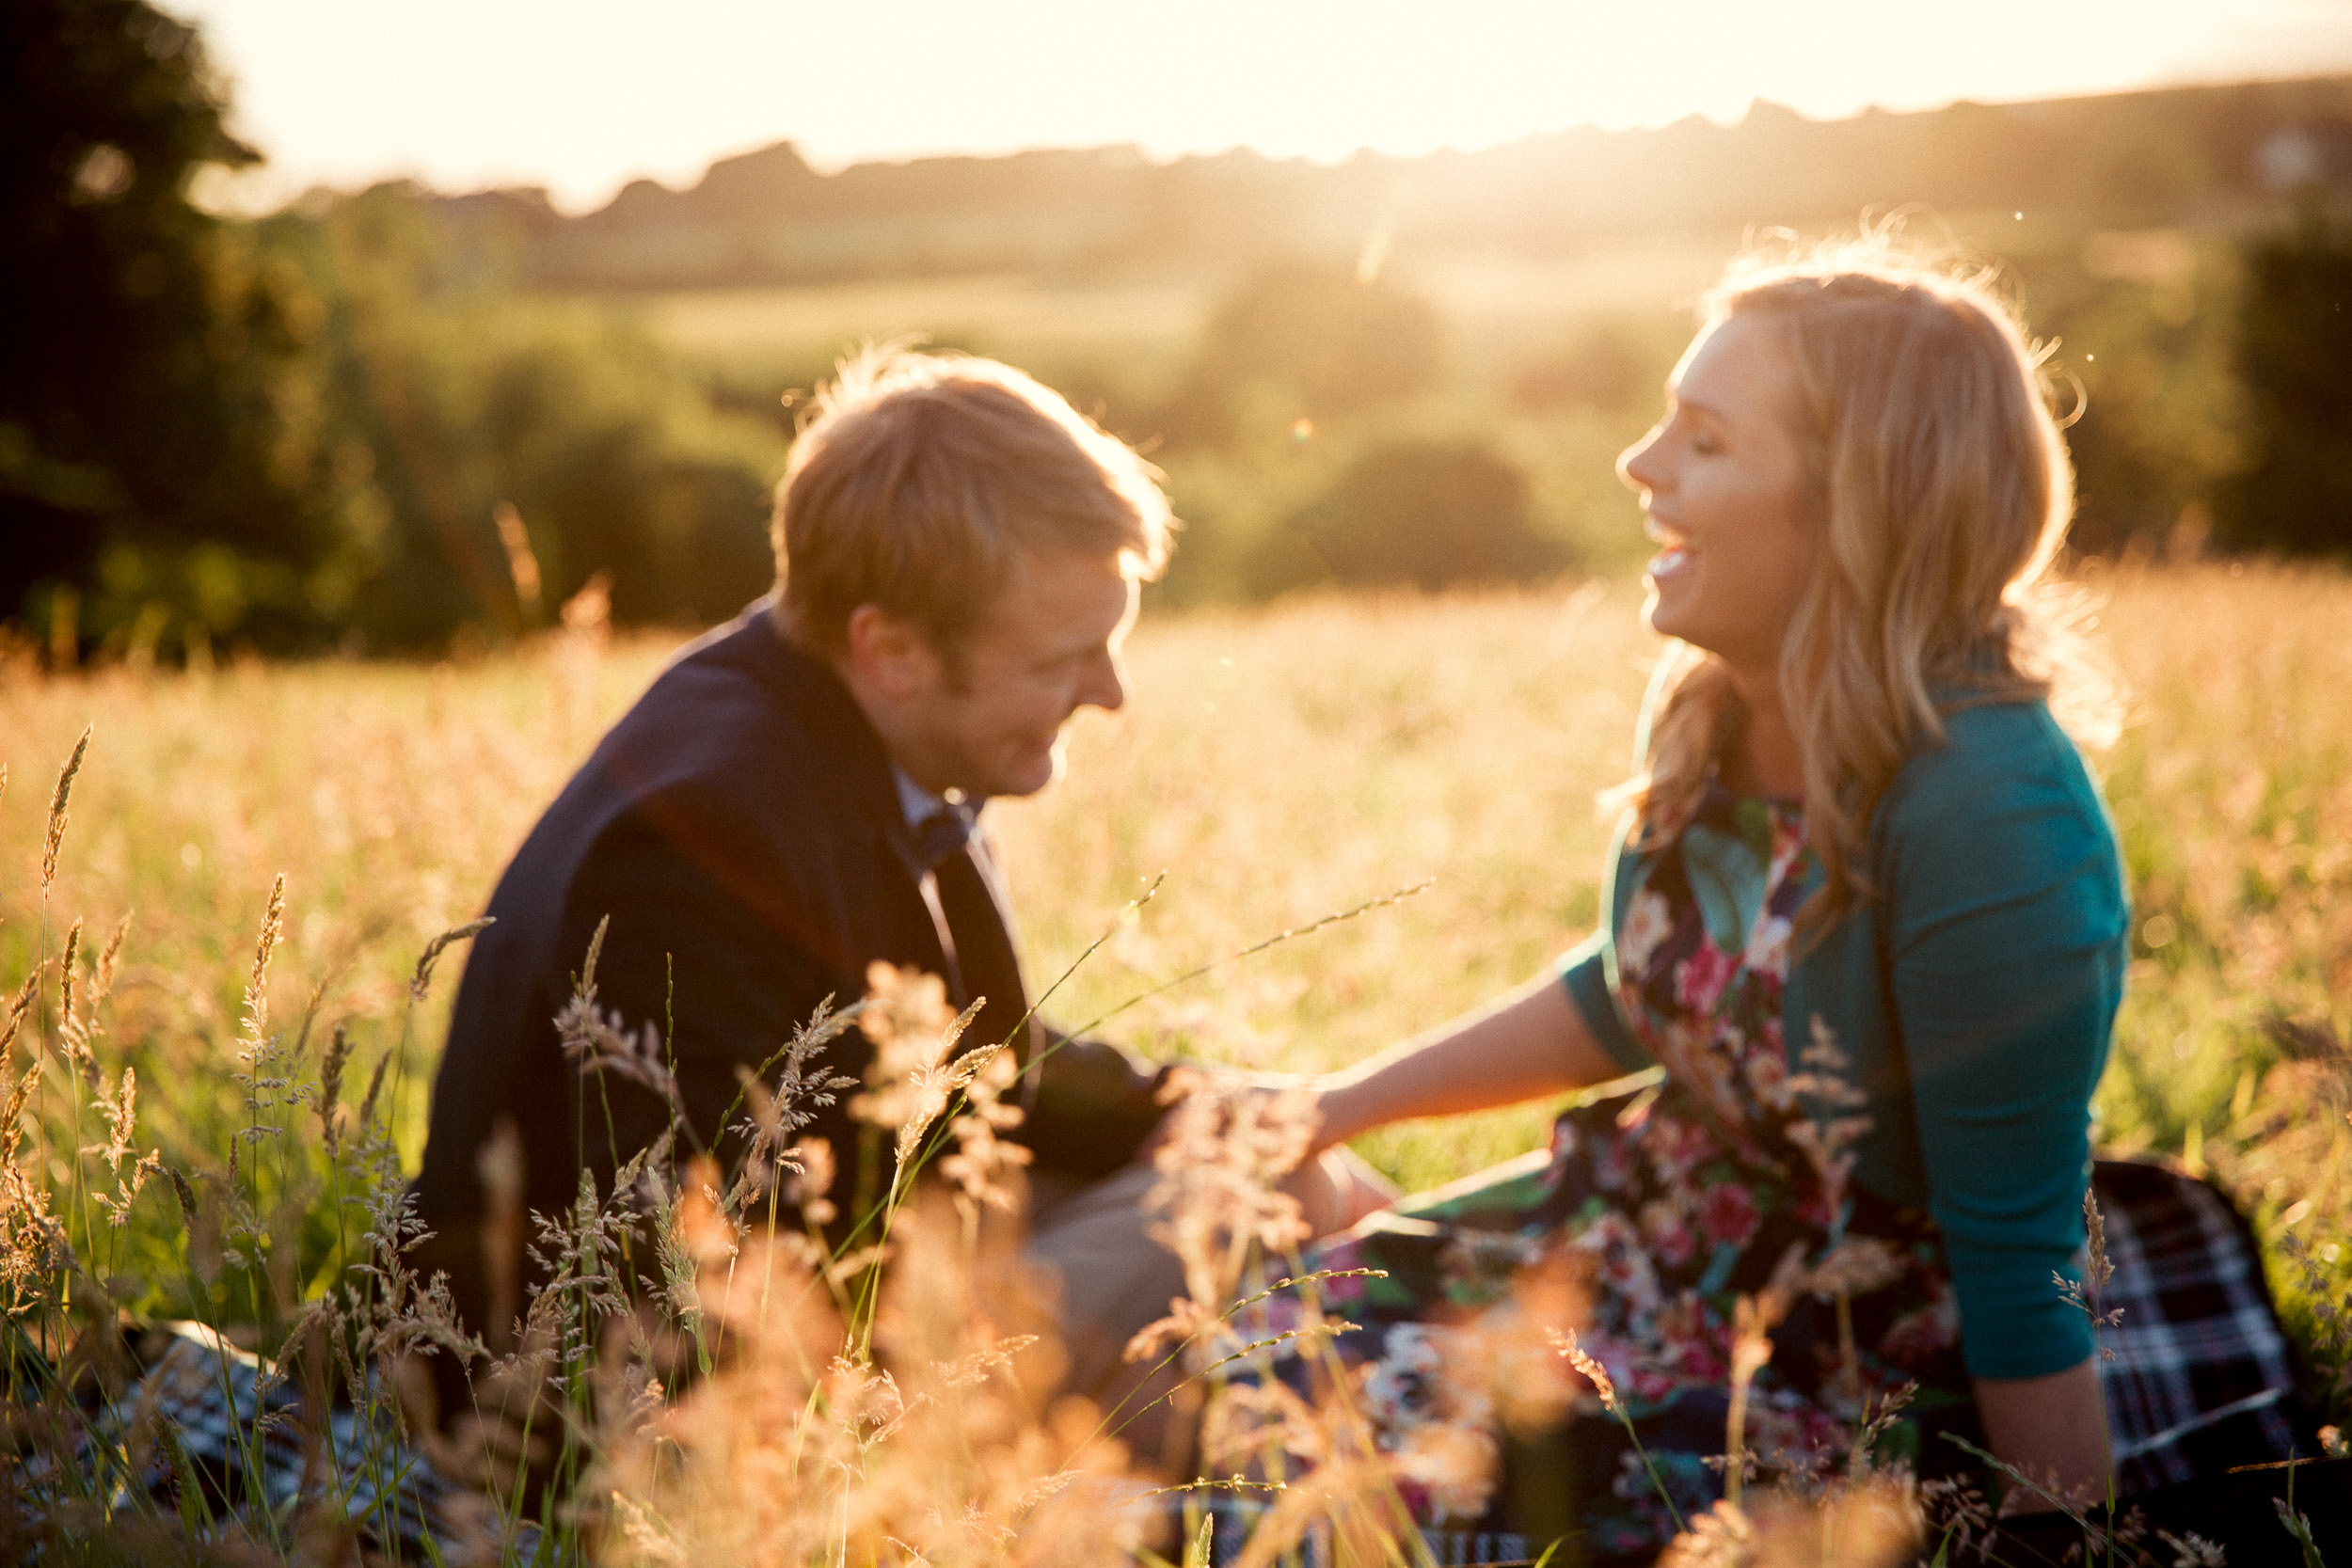 clairebyrnephotography-wedding-photography-ireland-engagement-sunset-farm-horses-55.jpg